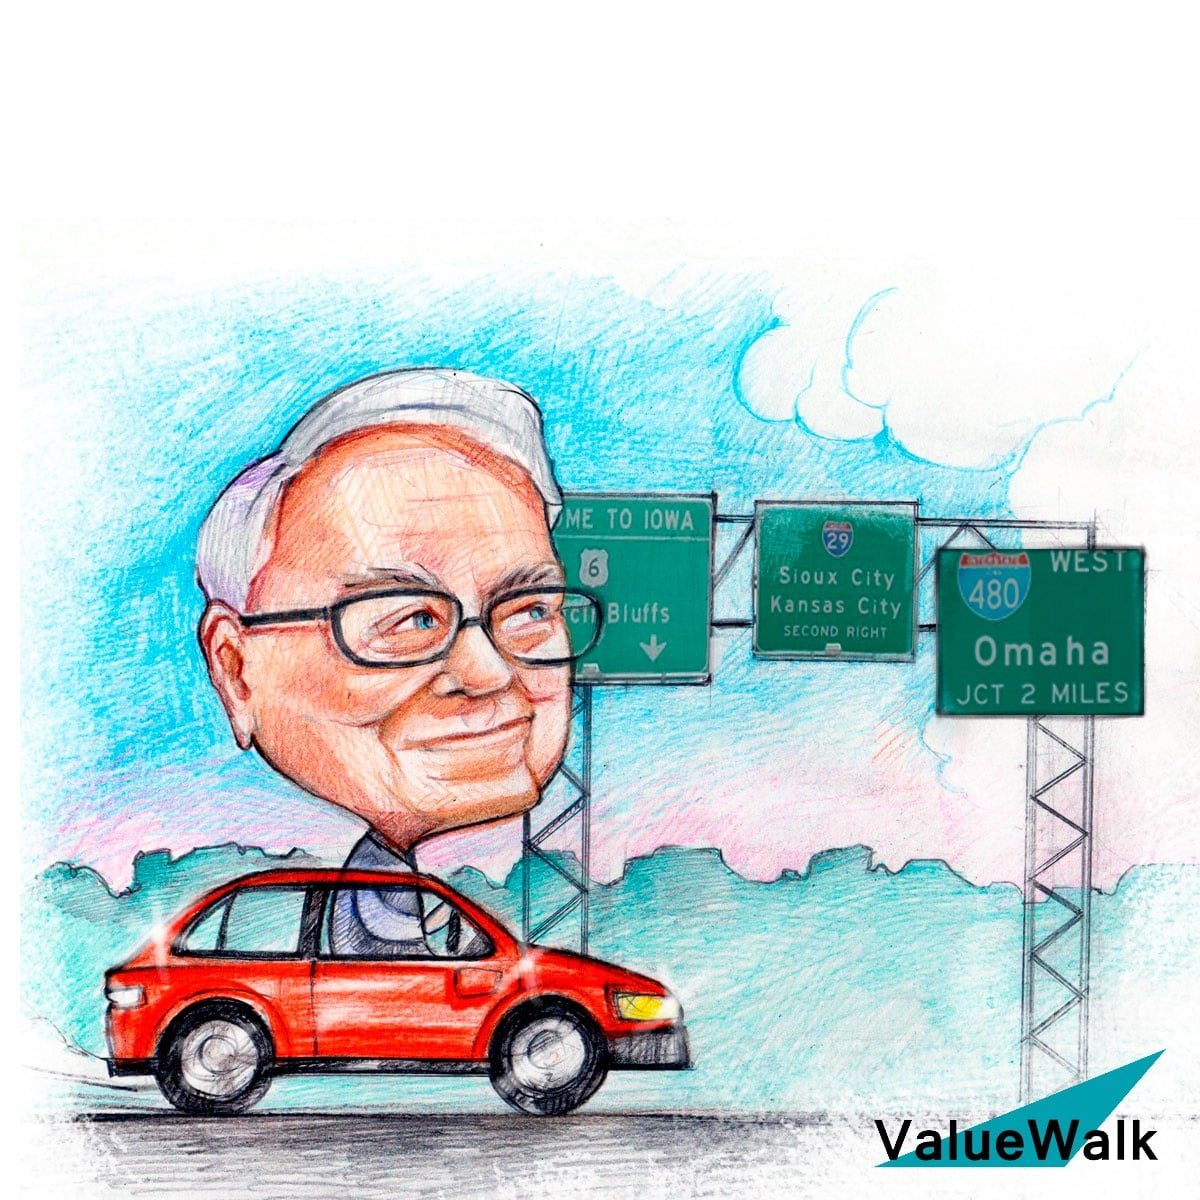 Warren Buffett coronavirus Billionaire Investor Warren Buffett Berkshire Hathaway chairman and CEO Warren Buffett interview NASDAQ:AAPL shares of apple warren buffett index funds Warren Buffett estimate of intrinsic value